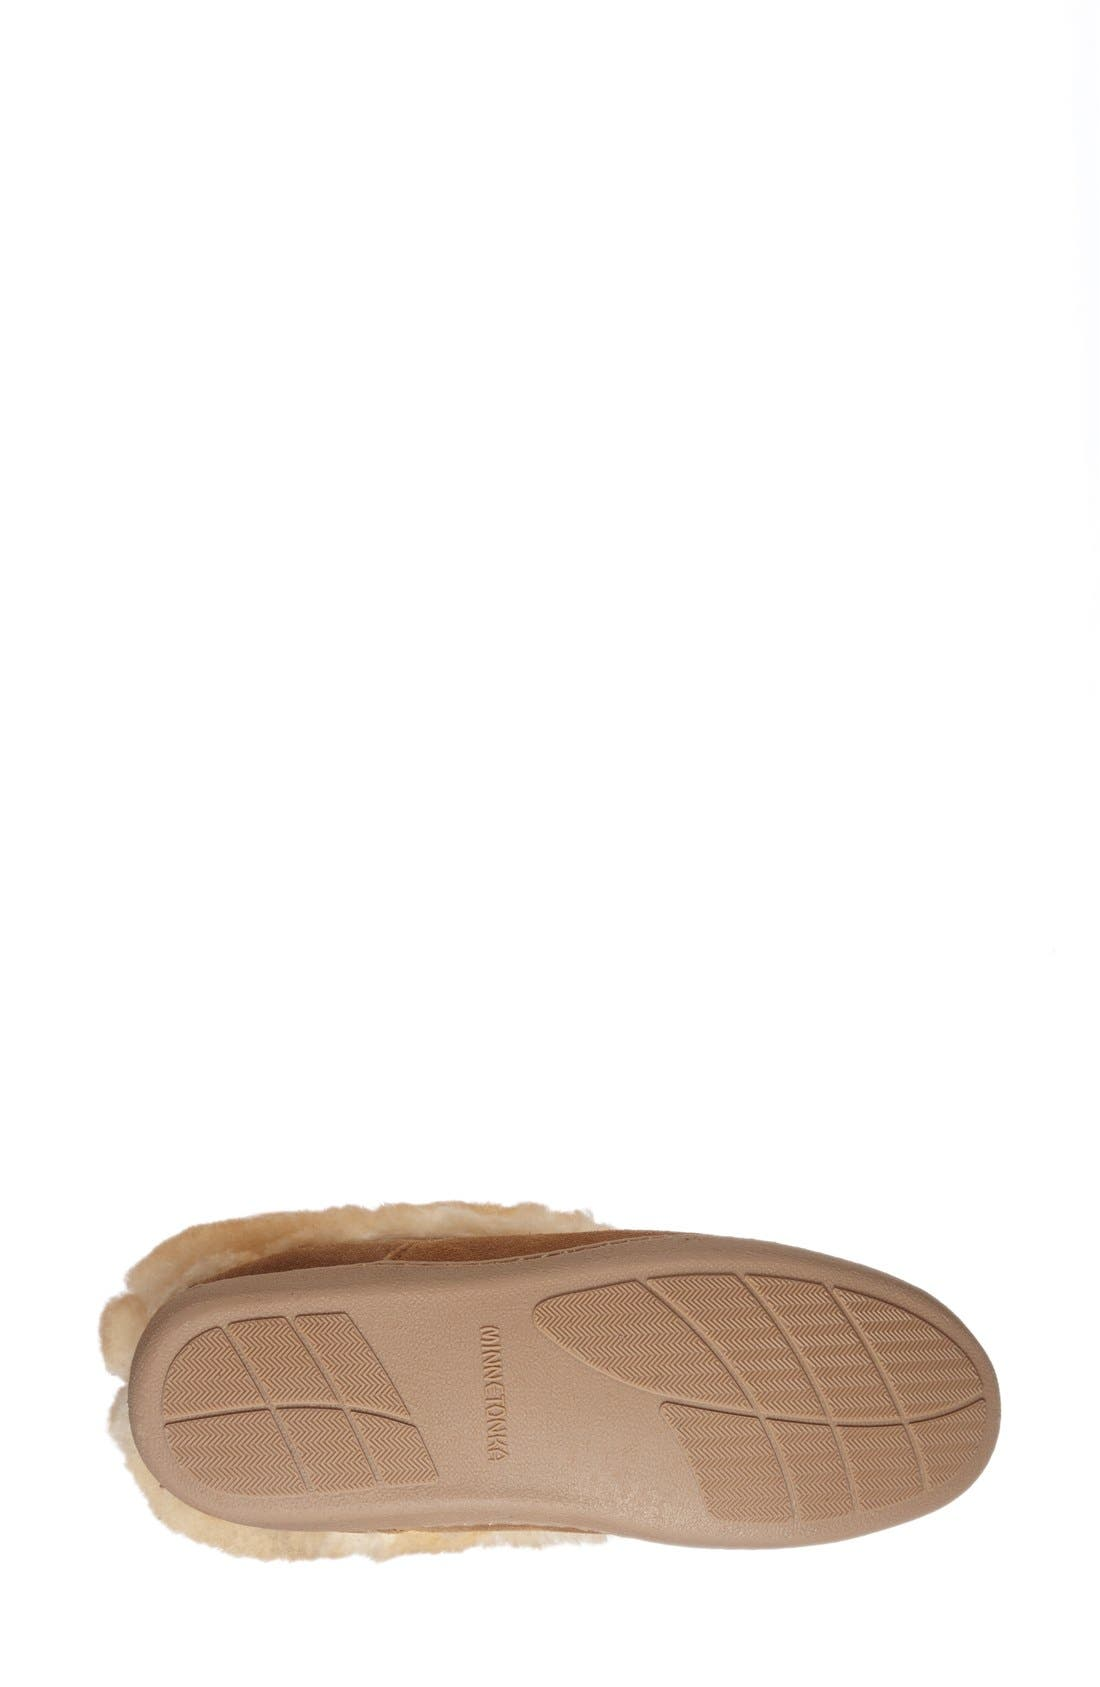 MINNETONKA, Sheepskin Slipper Bootie, Alternate thumbnail 4, color, TAN SUEDE